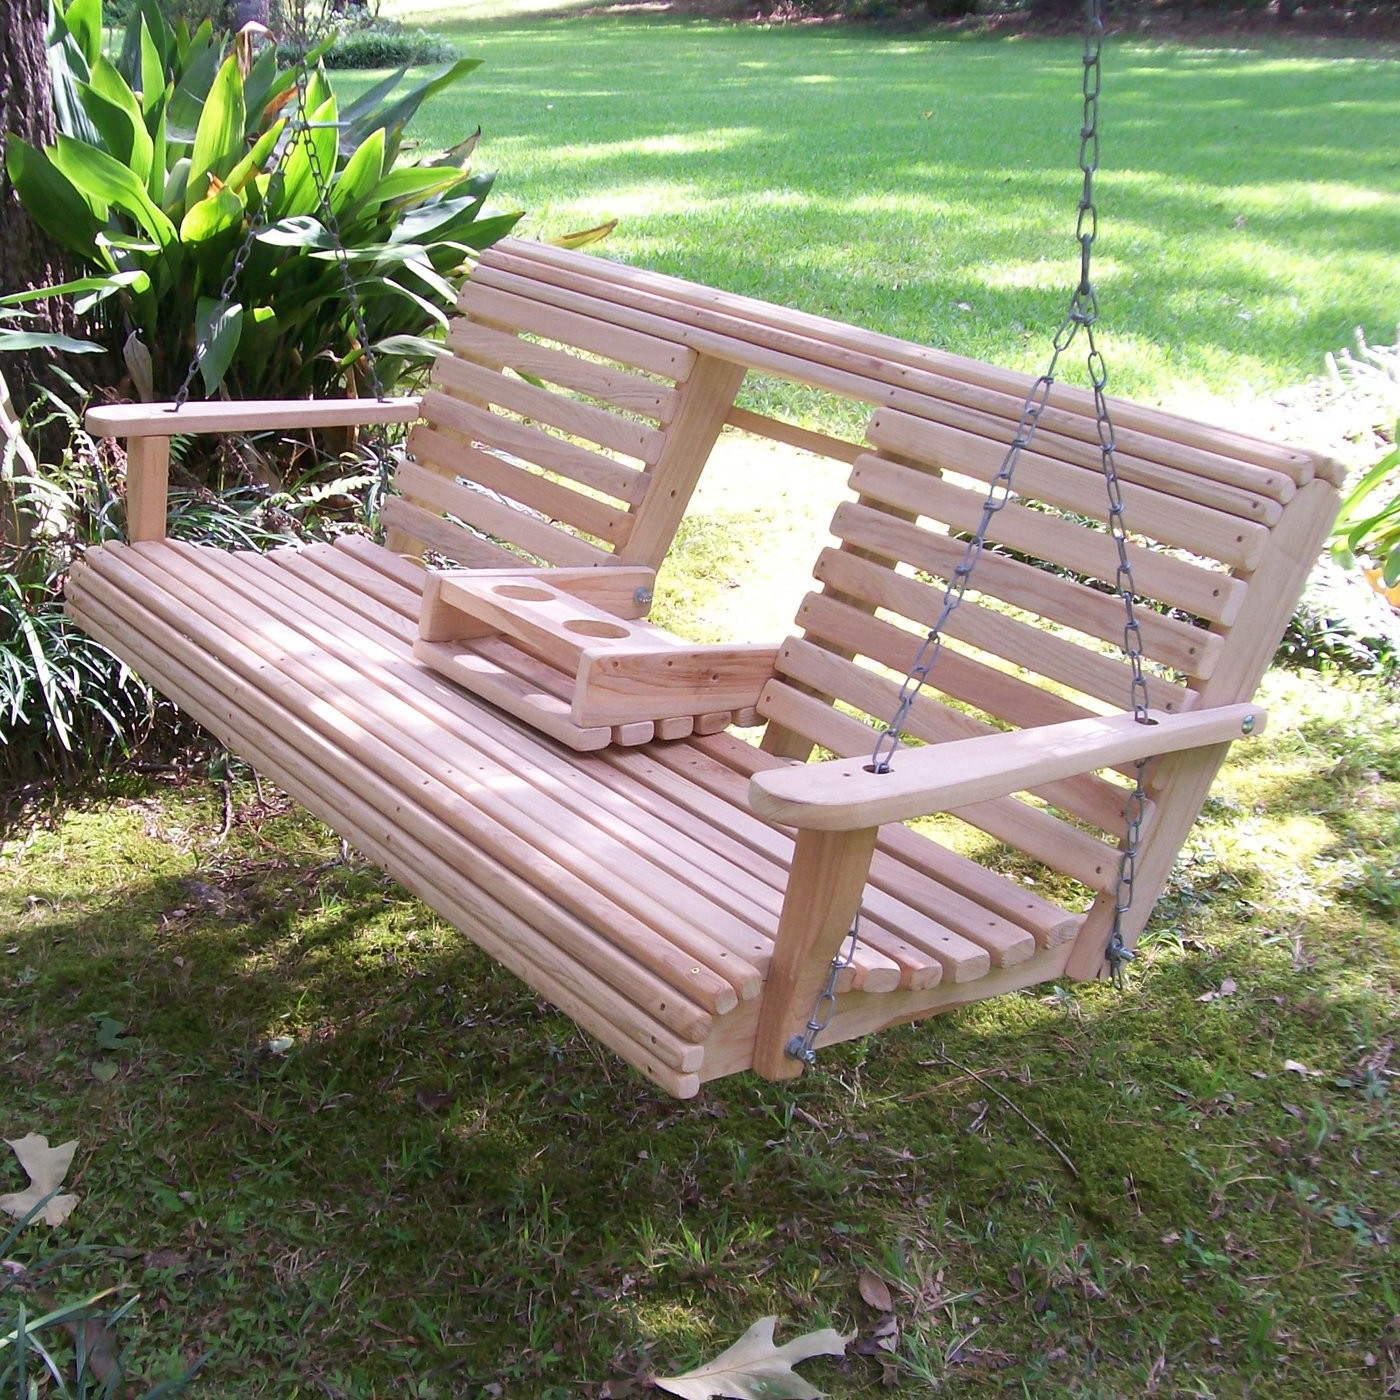 Beautifully Garden Swings That Everyone Will Like (photo Intended For Favorite Canopy Patio Porch Swings With Pillows And Cup Holders (View 14 of 25)